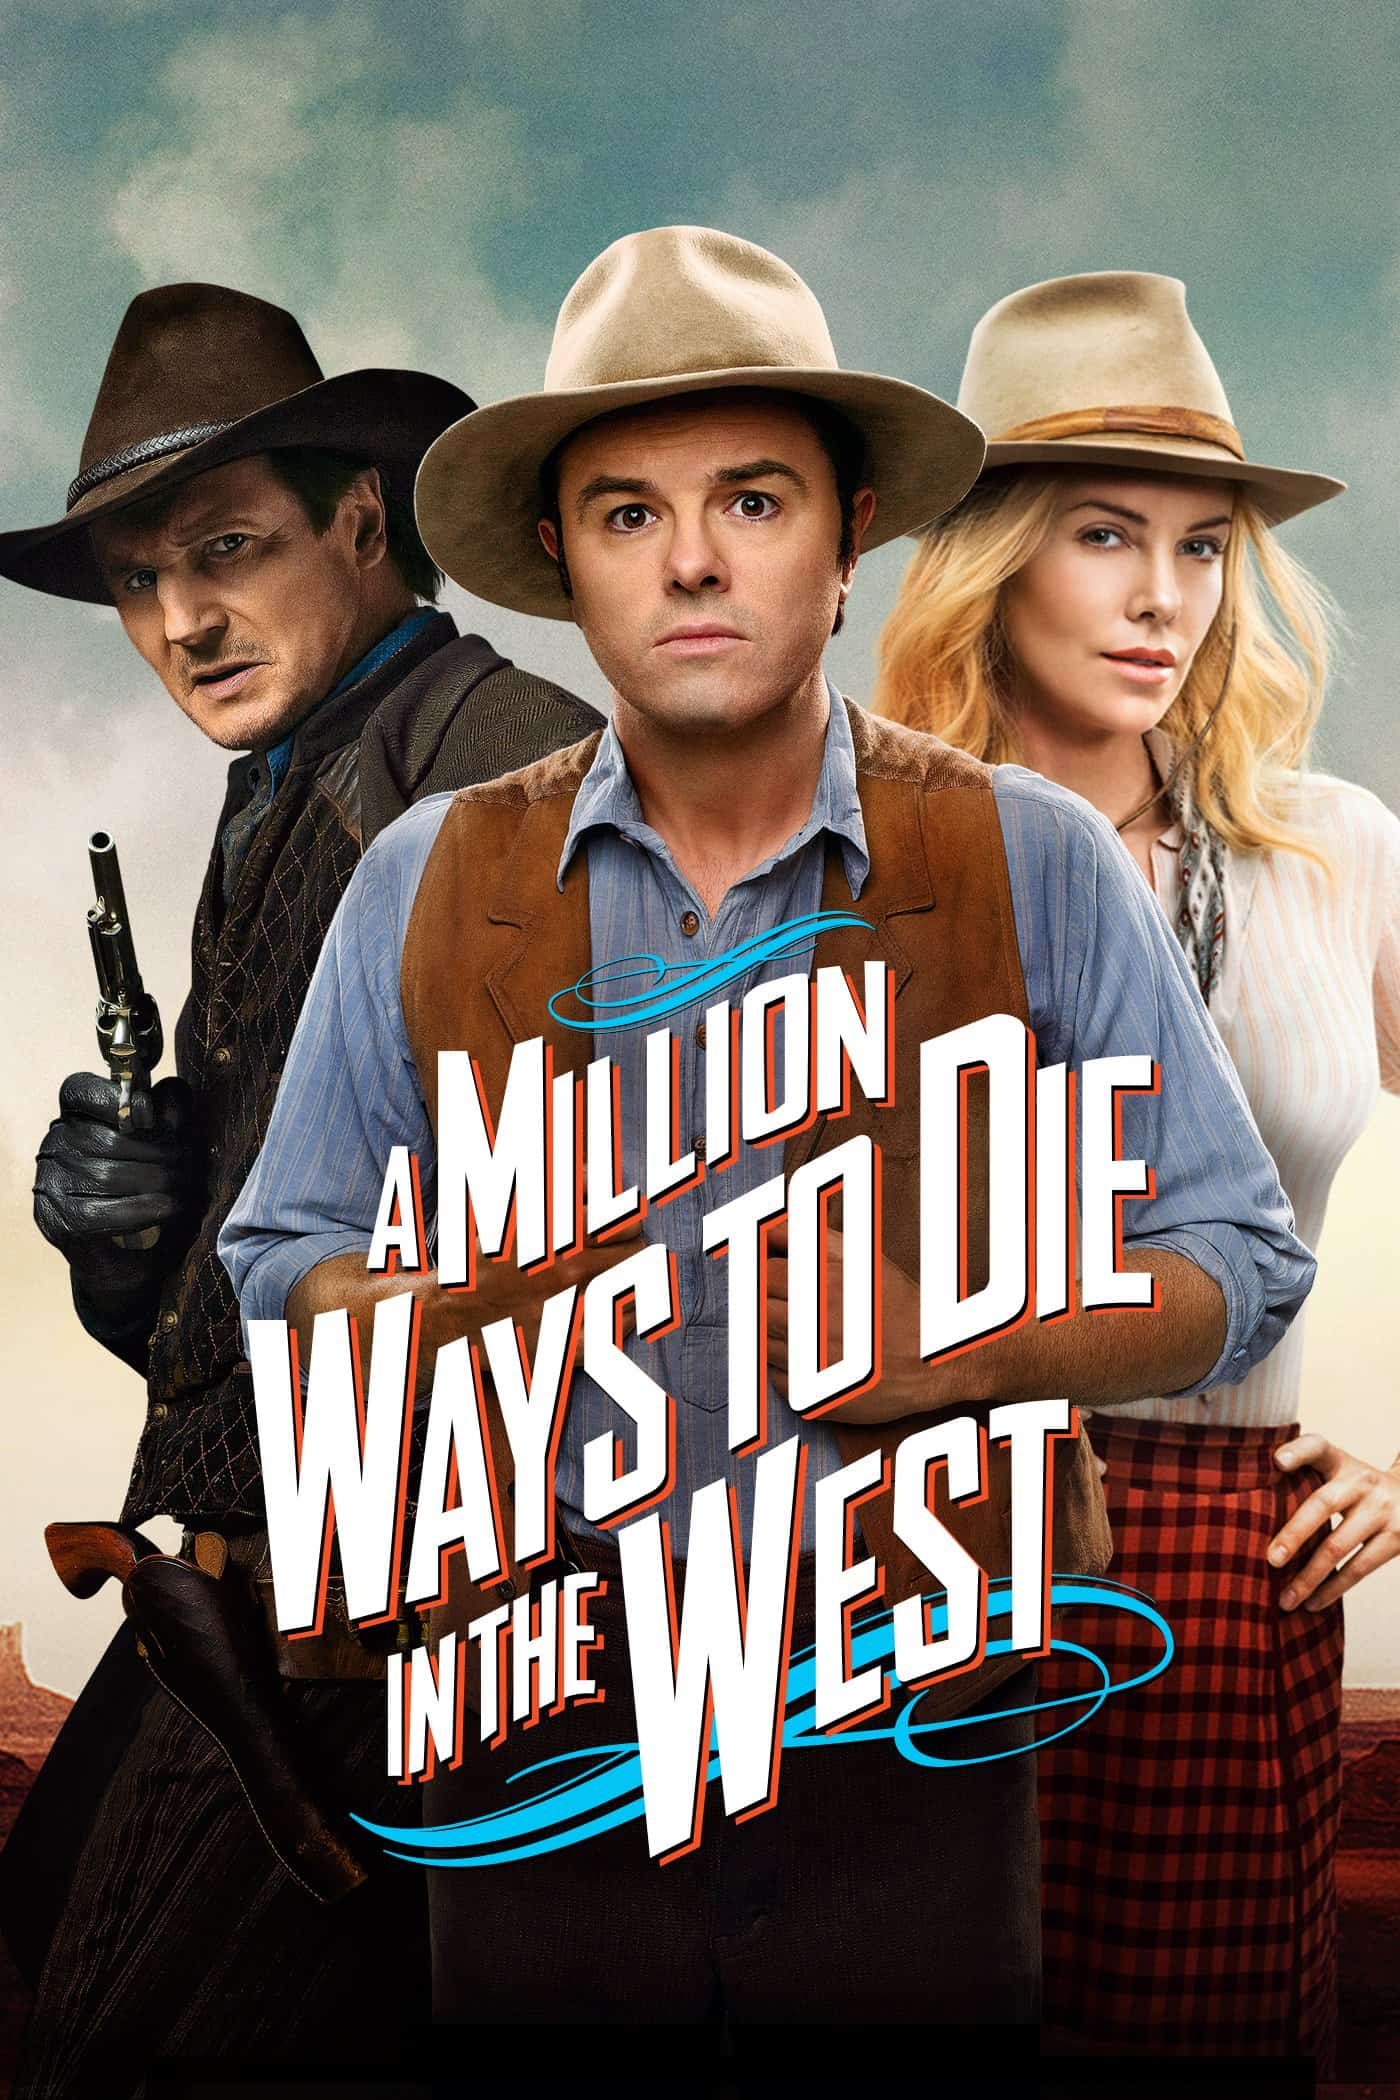 A Million Ways to Die in the West, 2014